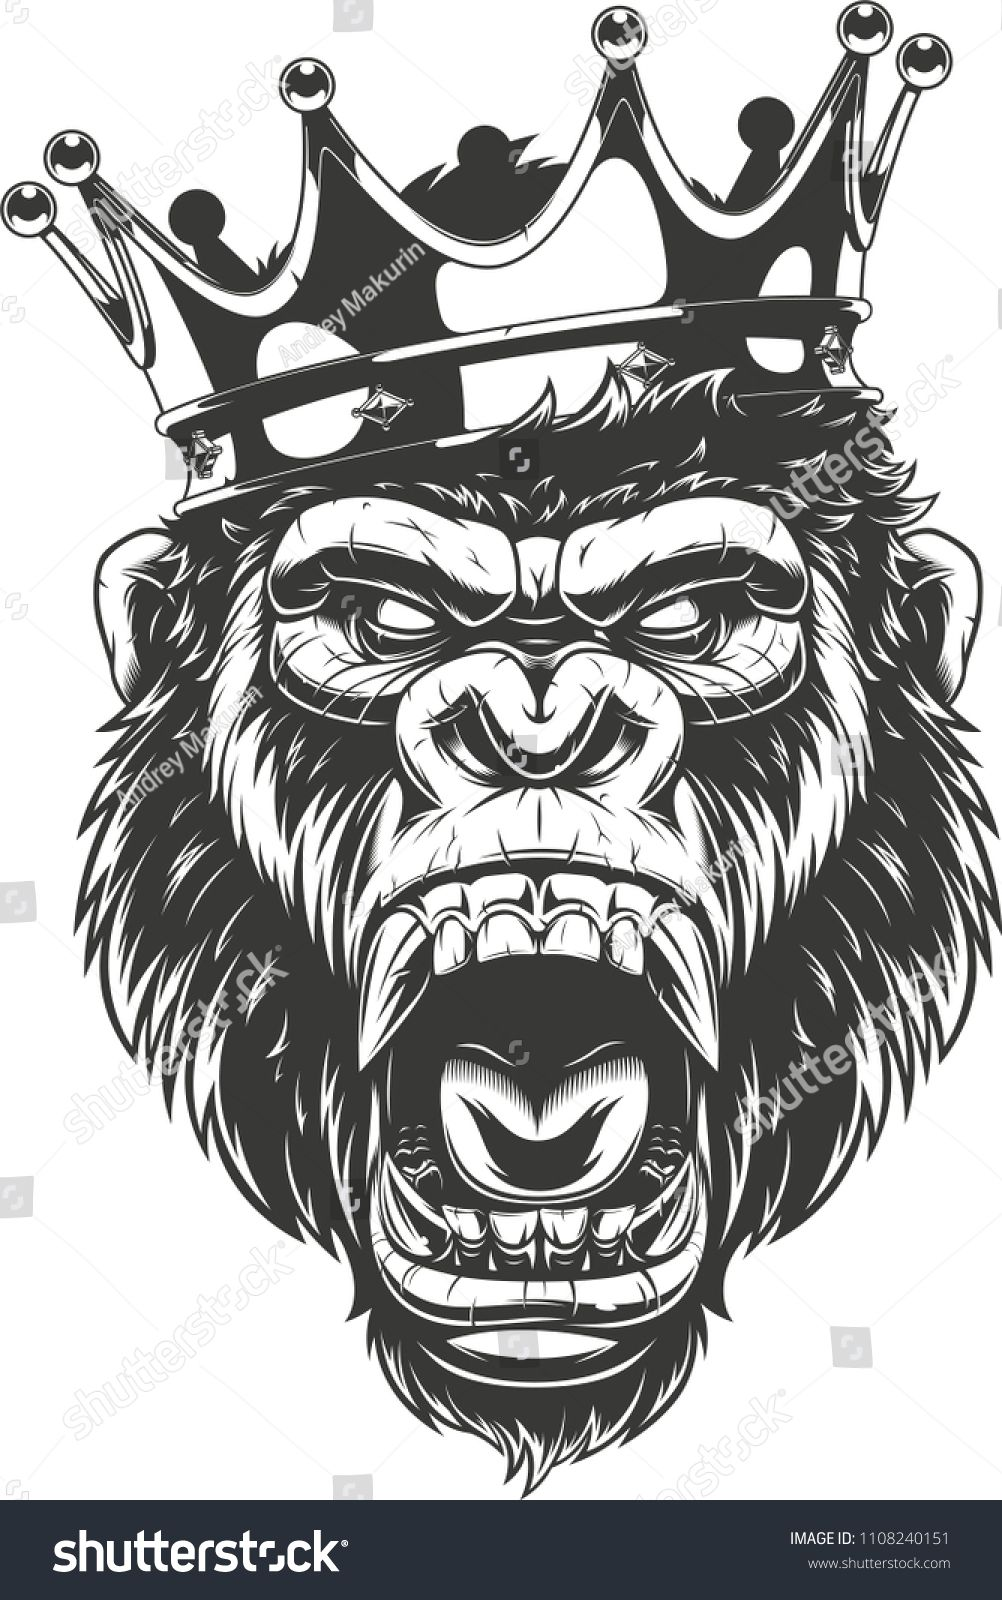 Vector Illustration Ferocious Gorilla Head On With Crown King Of